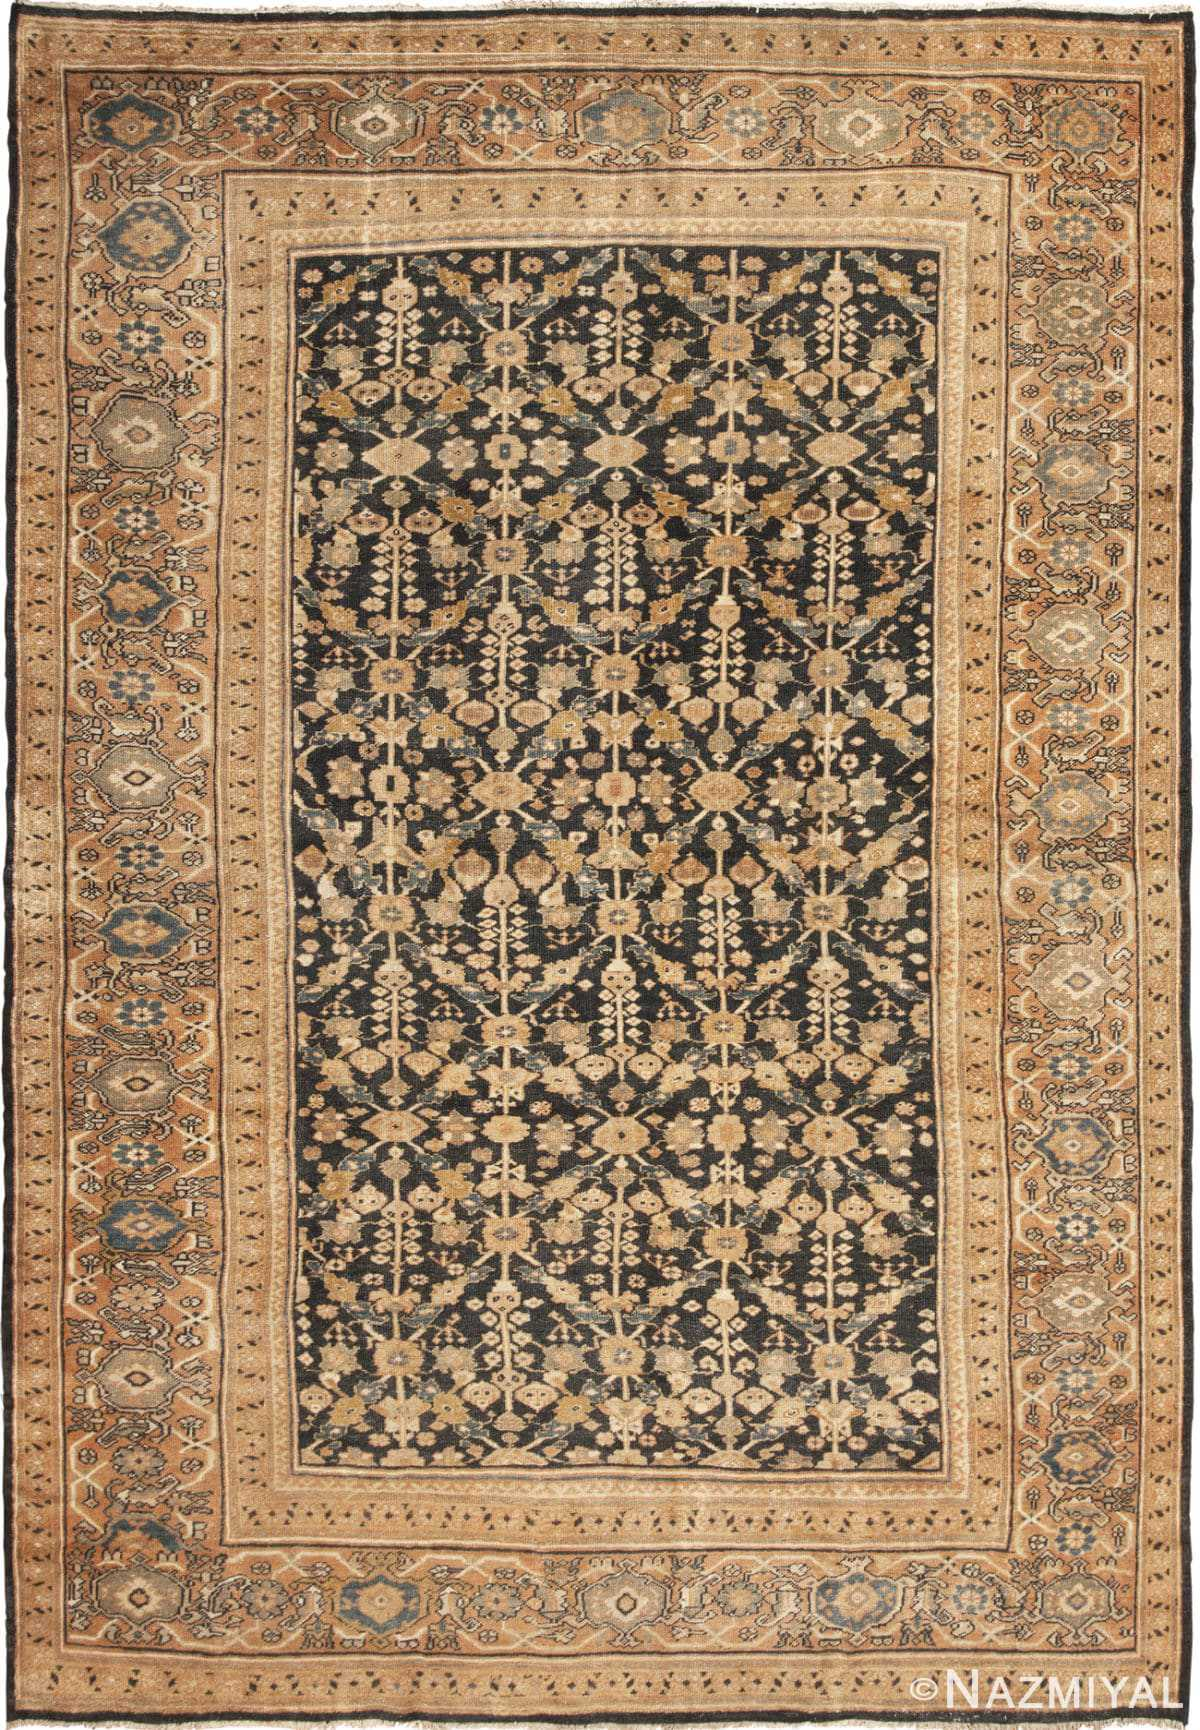 Full view room size Sultanabad Antique Persian Mahal rug 42589 by Nazmiyal